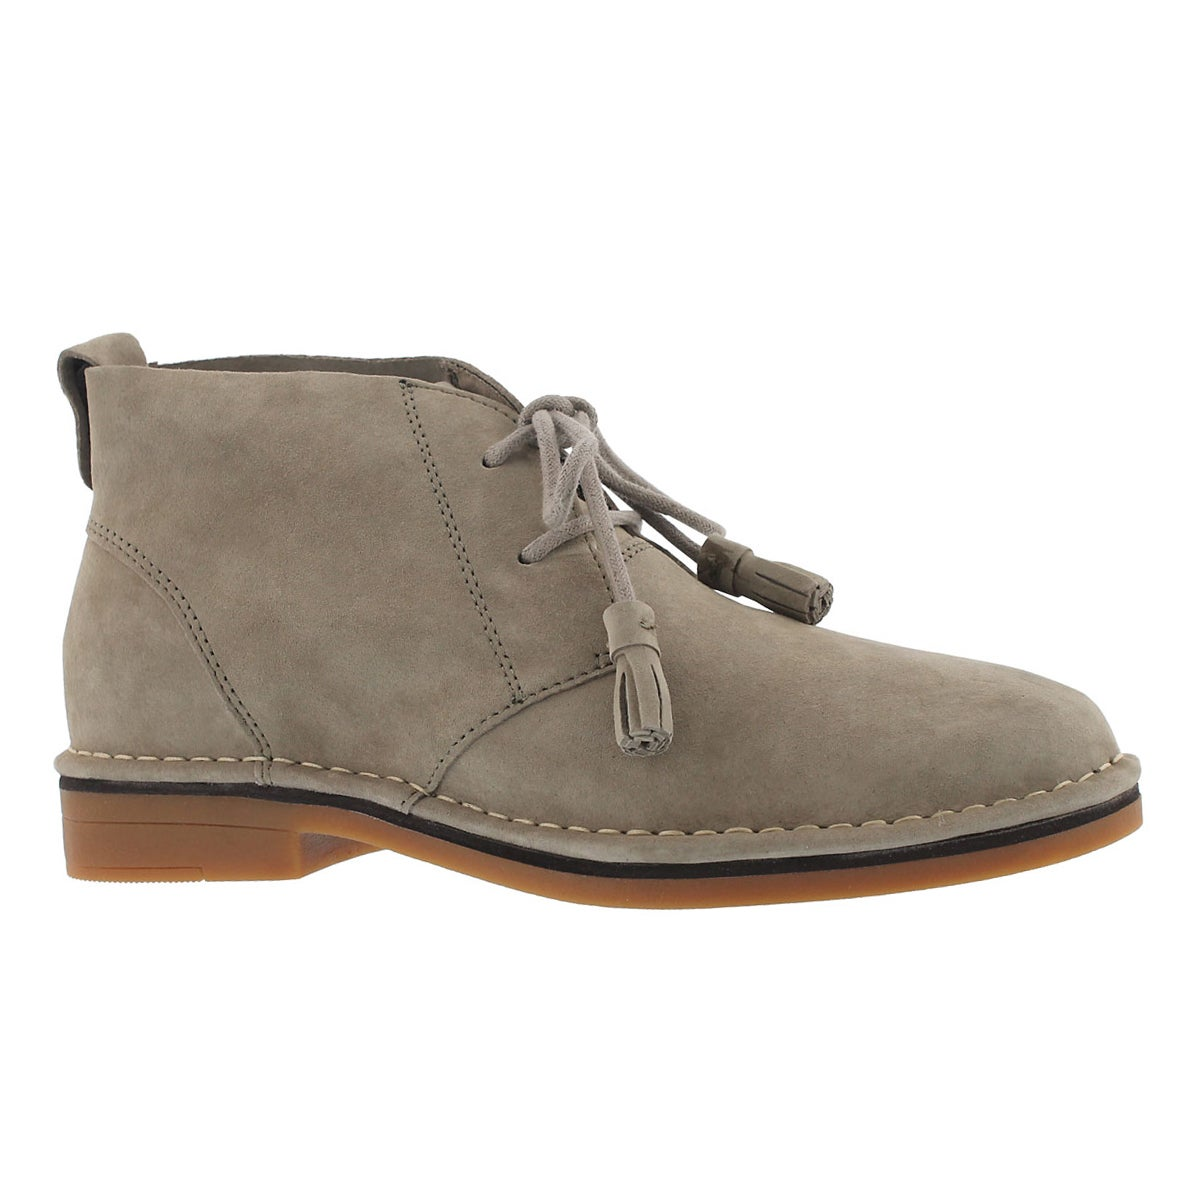 Women's CYRA CATELYN taupe chukka boots